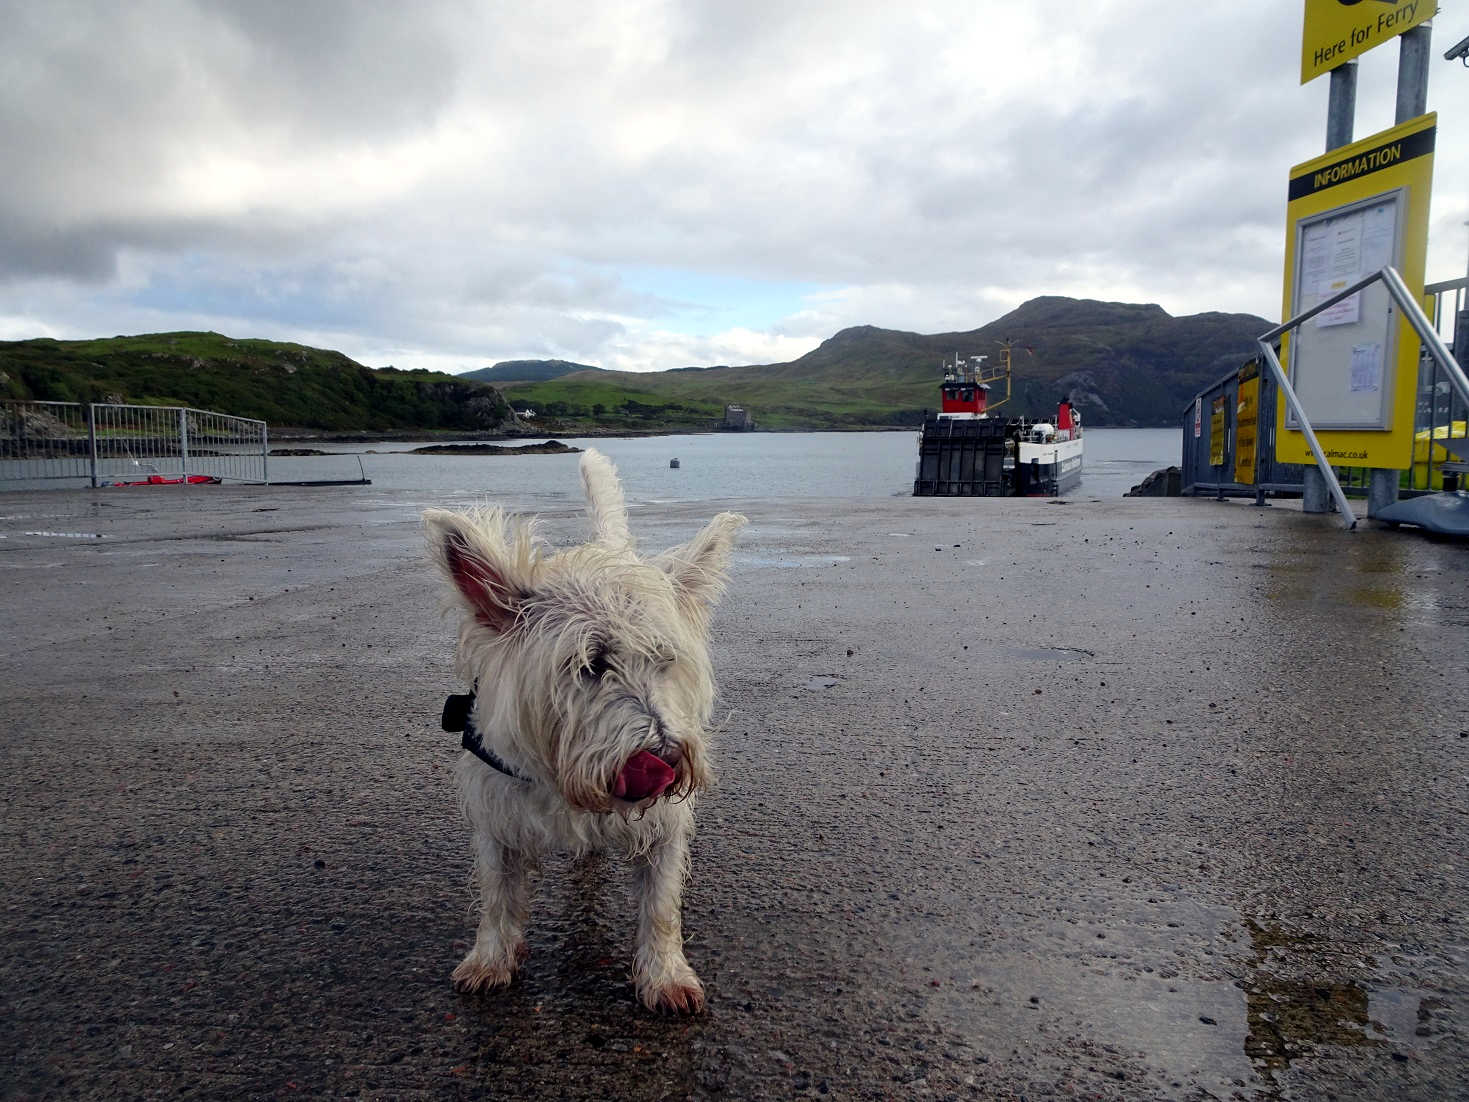 poppysocks waiting at Kilchoan for the mull ferry